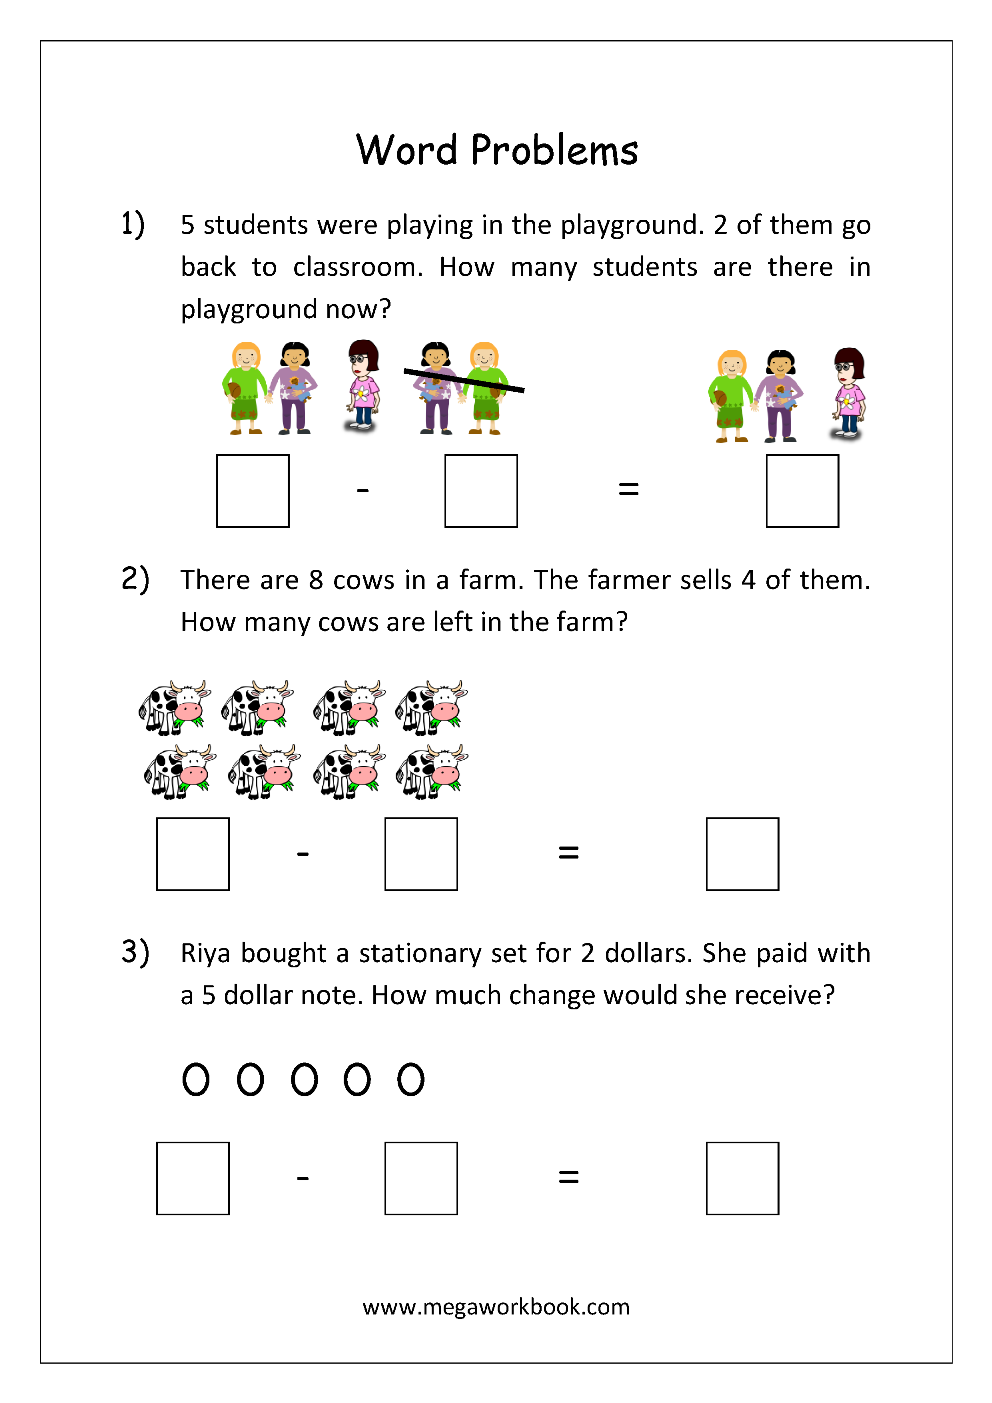 medium resolution of Addition and Subtraction Word Problems Worksheets For Kindergarten and Grade  1 - Story Sums - S…   Word problem worksheets